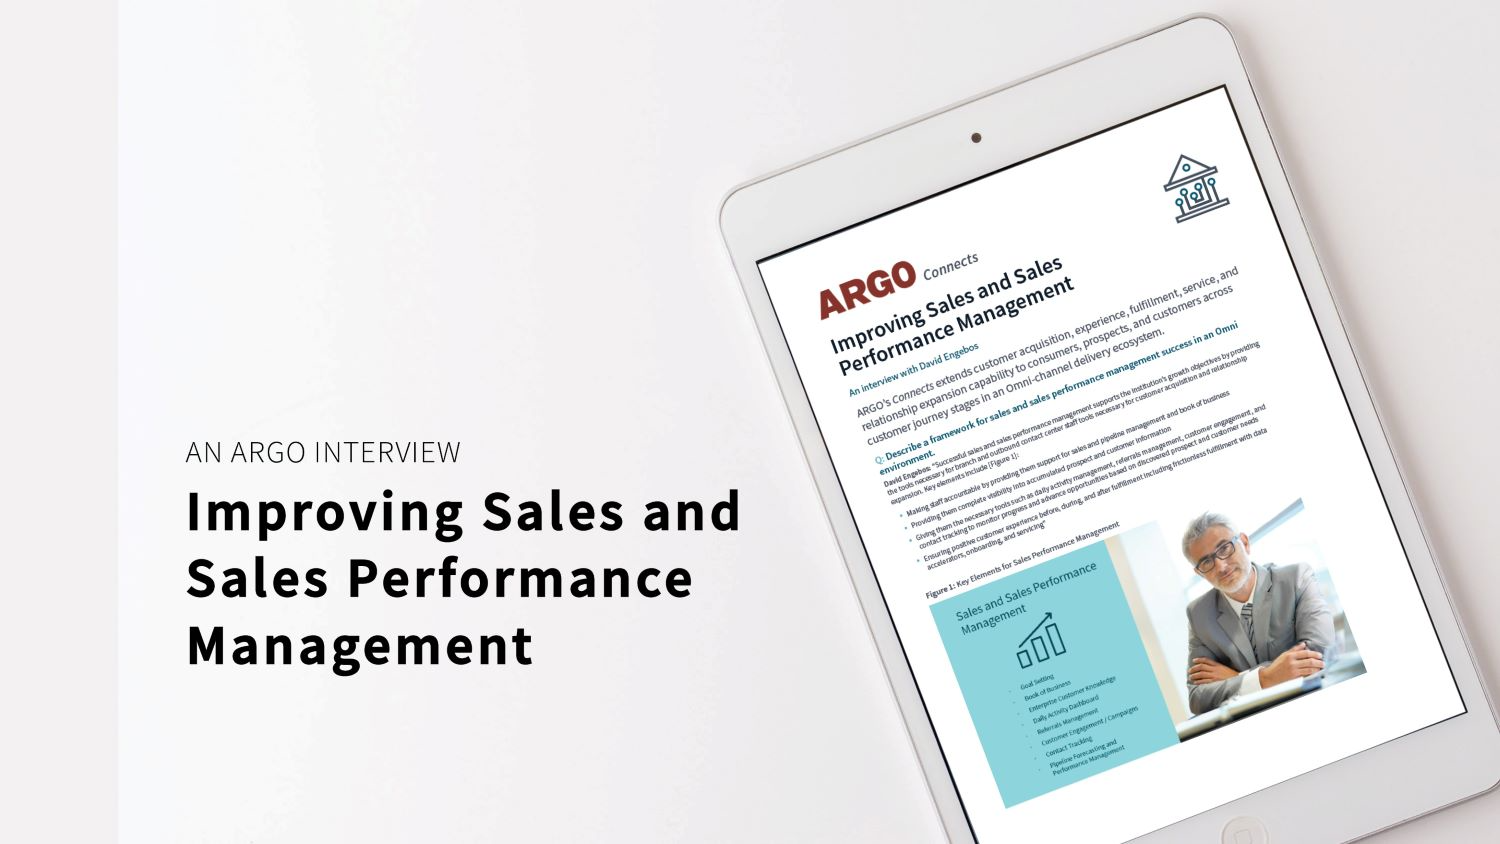 Updated.Improving Sales and Sales Performance Management 092821 RESIZED[30]